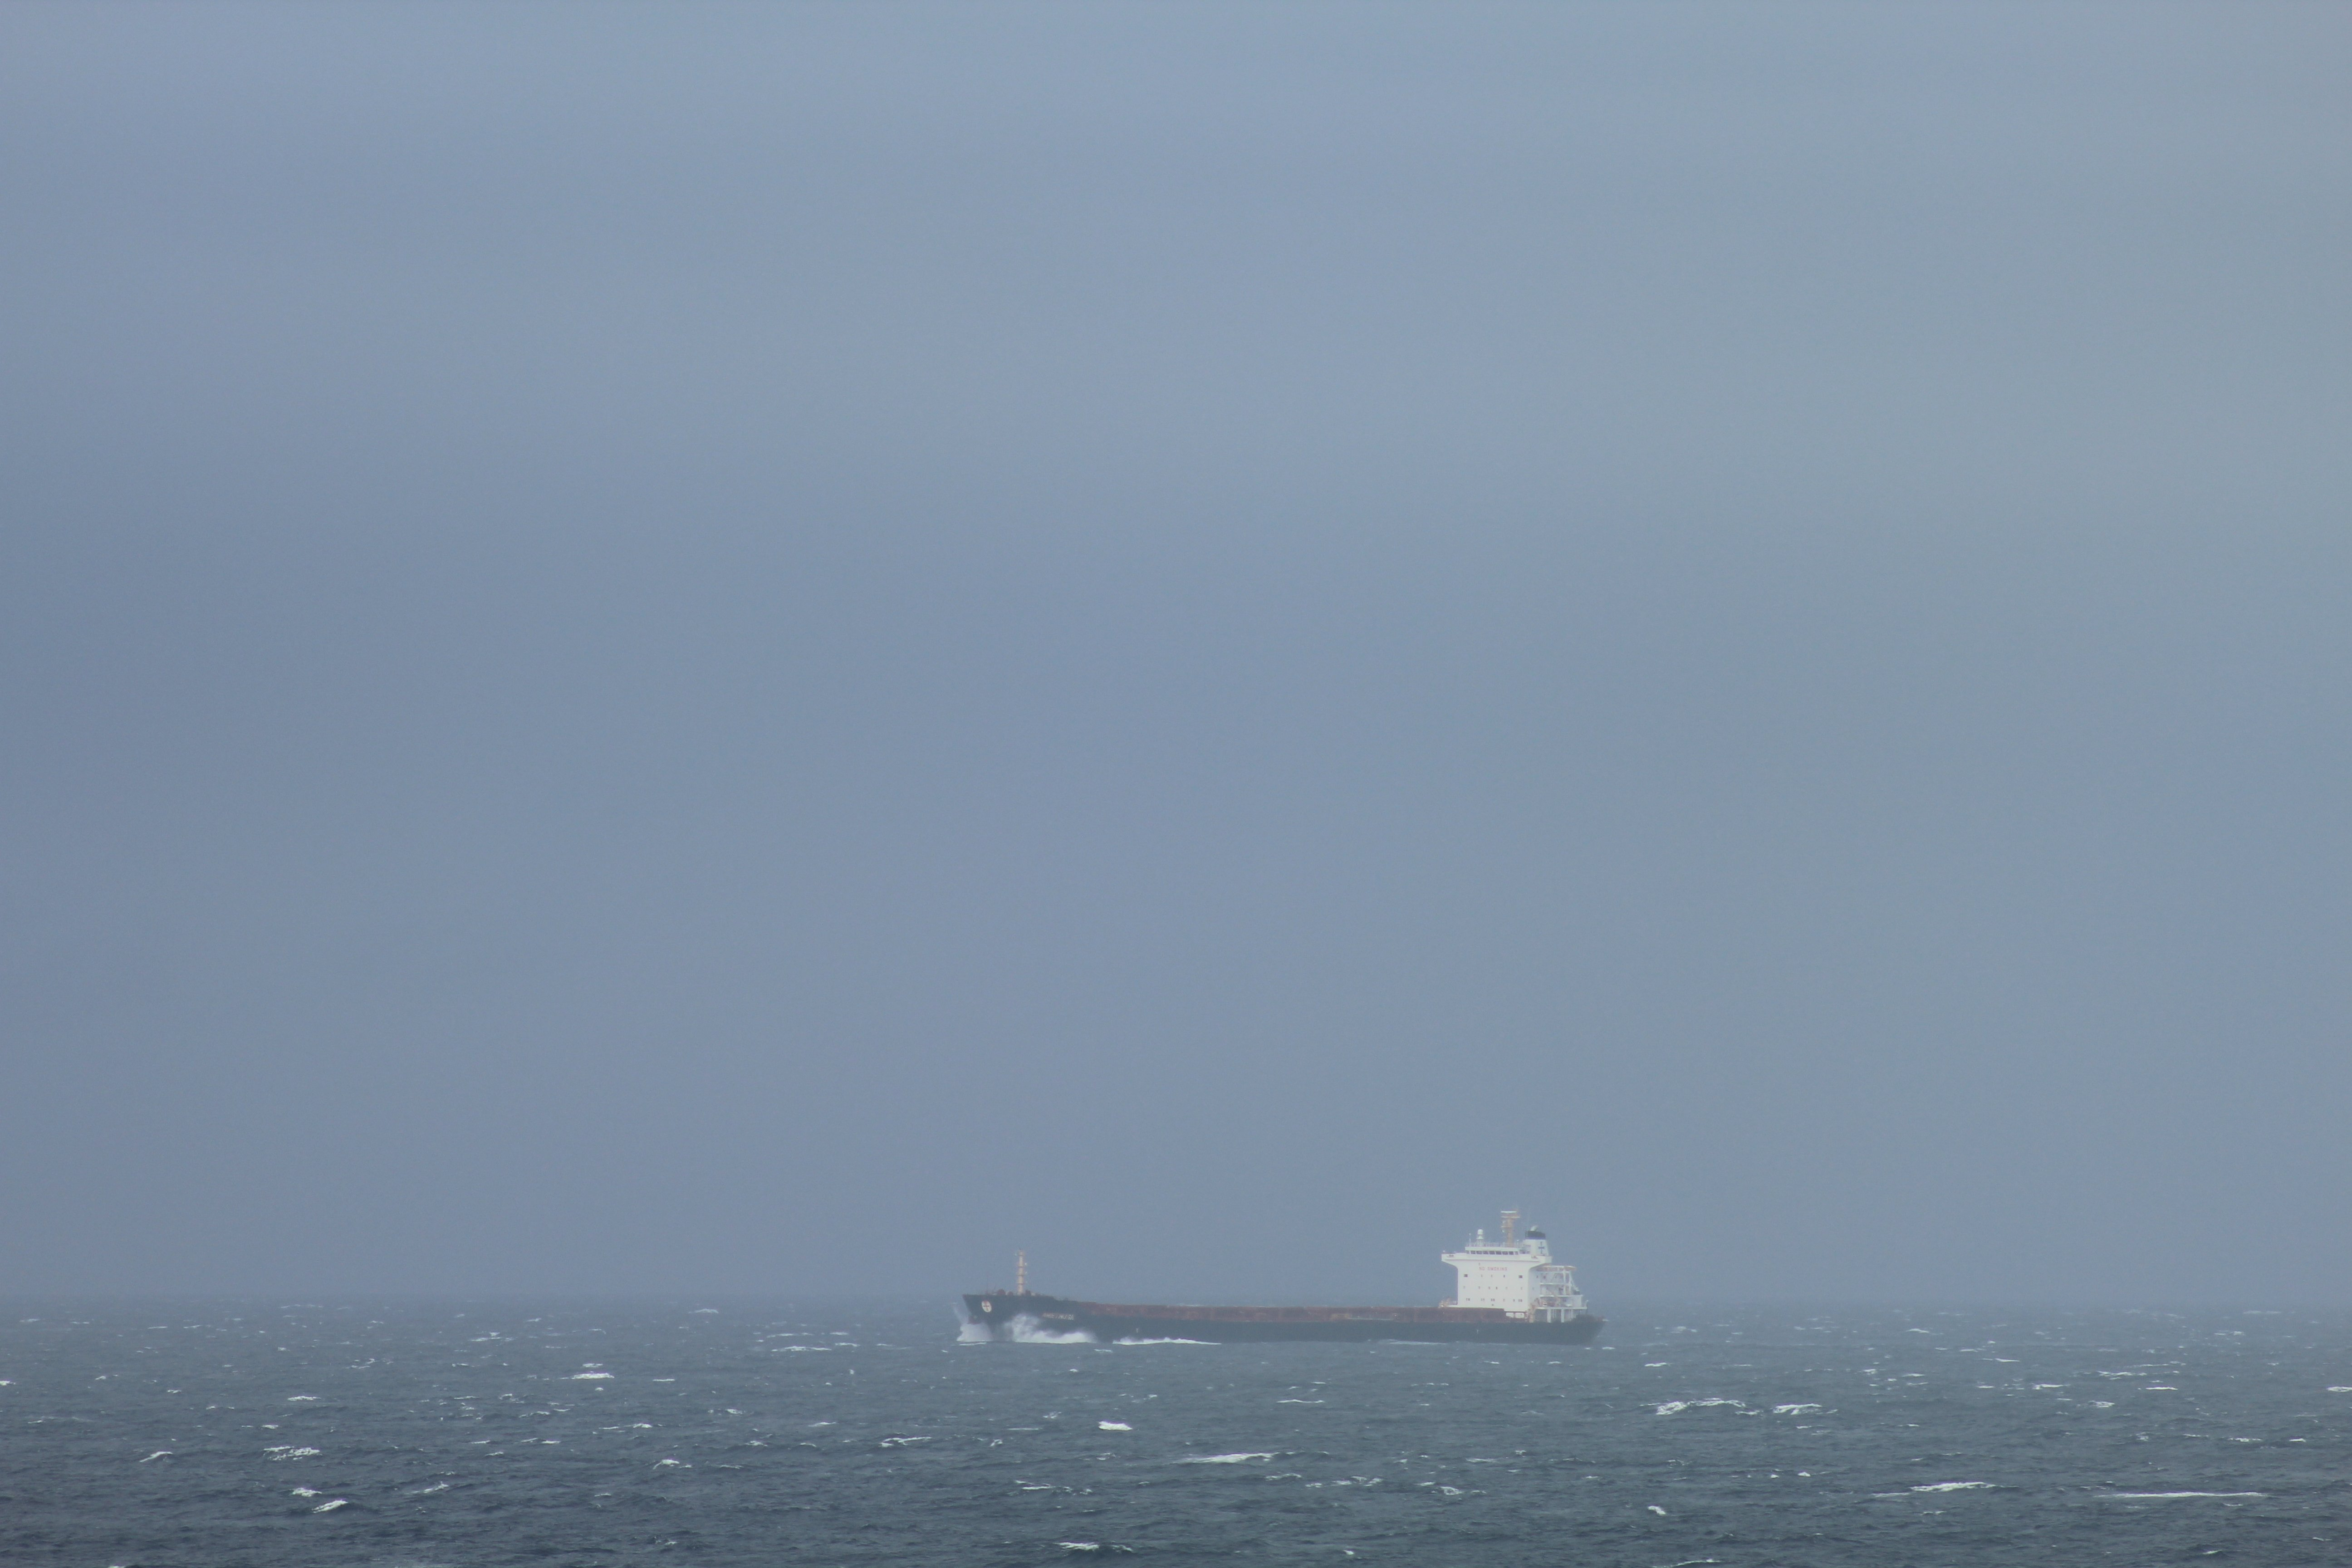 A cargo ship passes through Unimak Pass on its way to Singapore, traveling in the opposite direction of the U.S. Coast Guard icebreaker the Healy on the evening of Wednesday, July 22, 2015. It's about 3,000 yards away from the Healy. There's often a lot more traffic pushing through this path from all over the world. (Kamala Kelkar / Alaska Dispatch News)